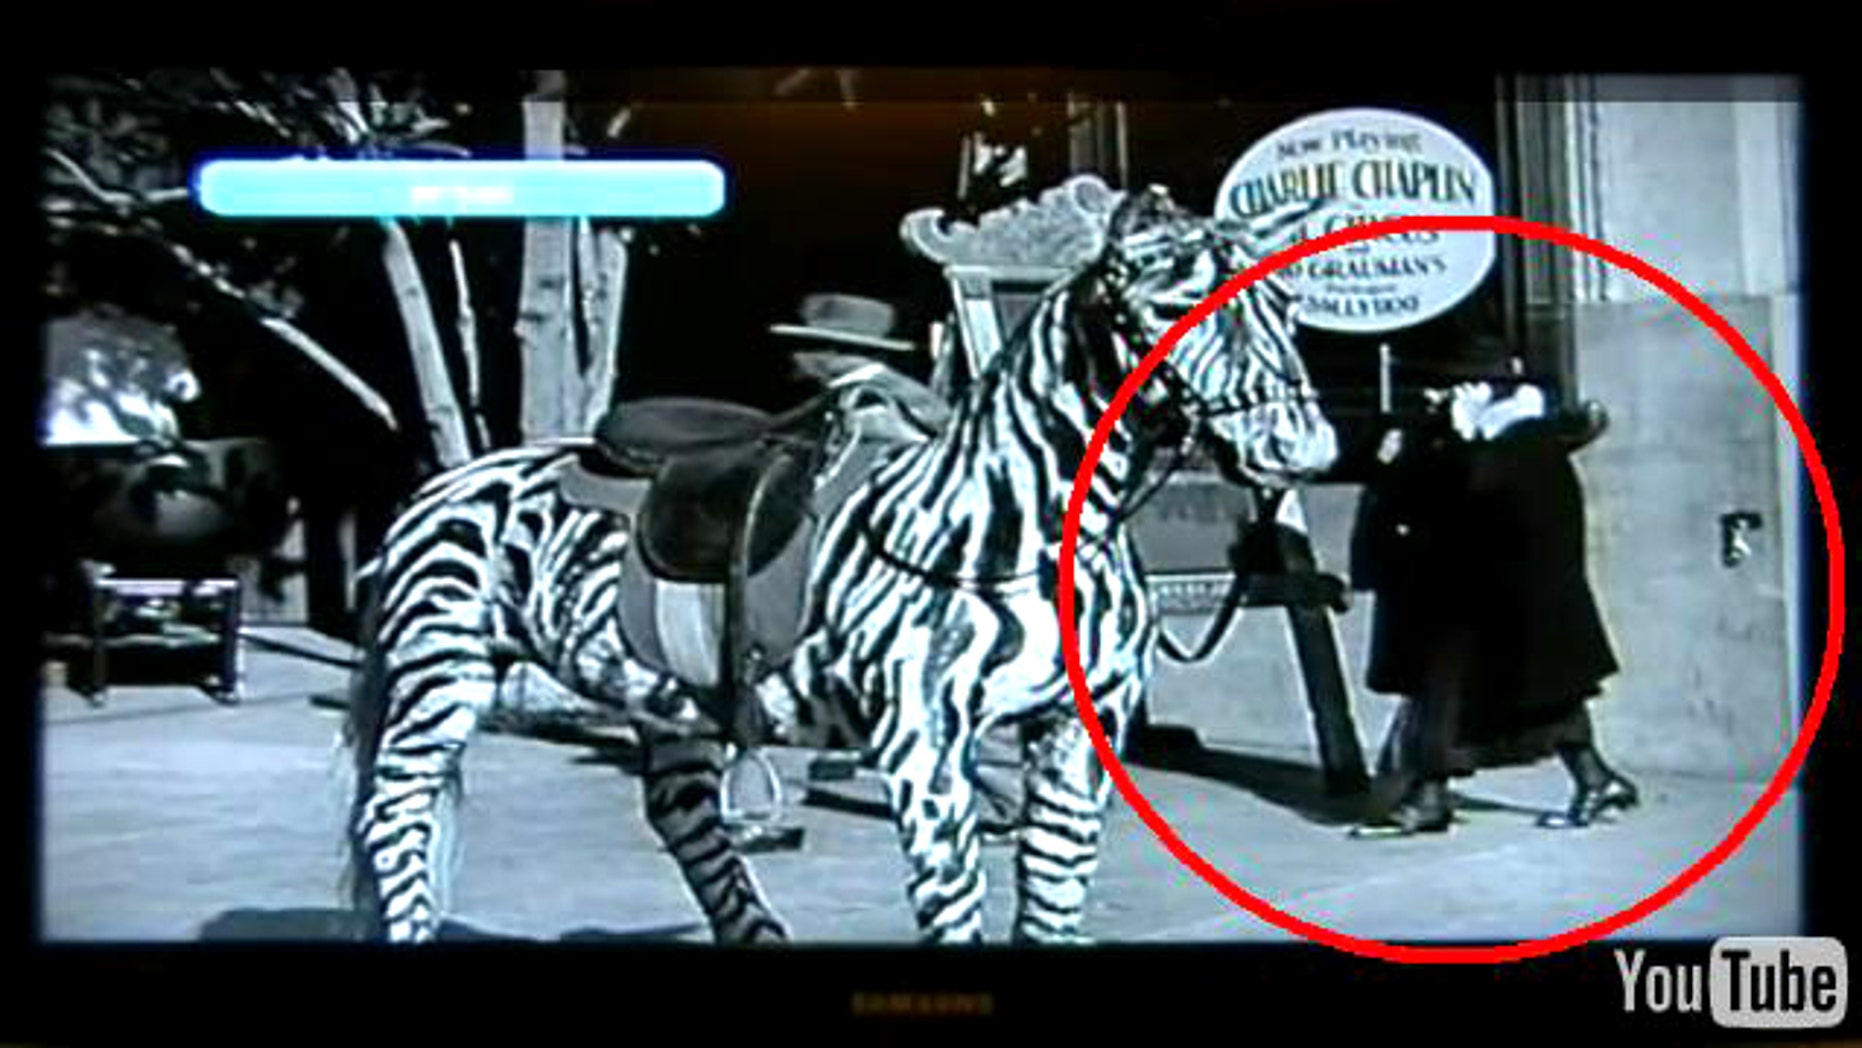 A documentary filmmaker has found an out of place scene in documentary footage released with a Charlie Chaplin movie. The scene shows a large woman dressed in black with a hat hiding most of her face, with what can he describes as a mobile phone, talking as she walks alone.